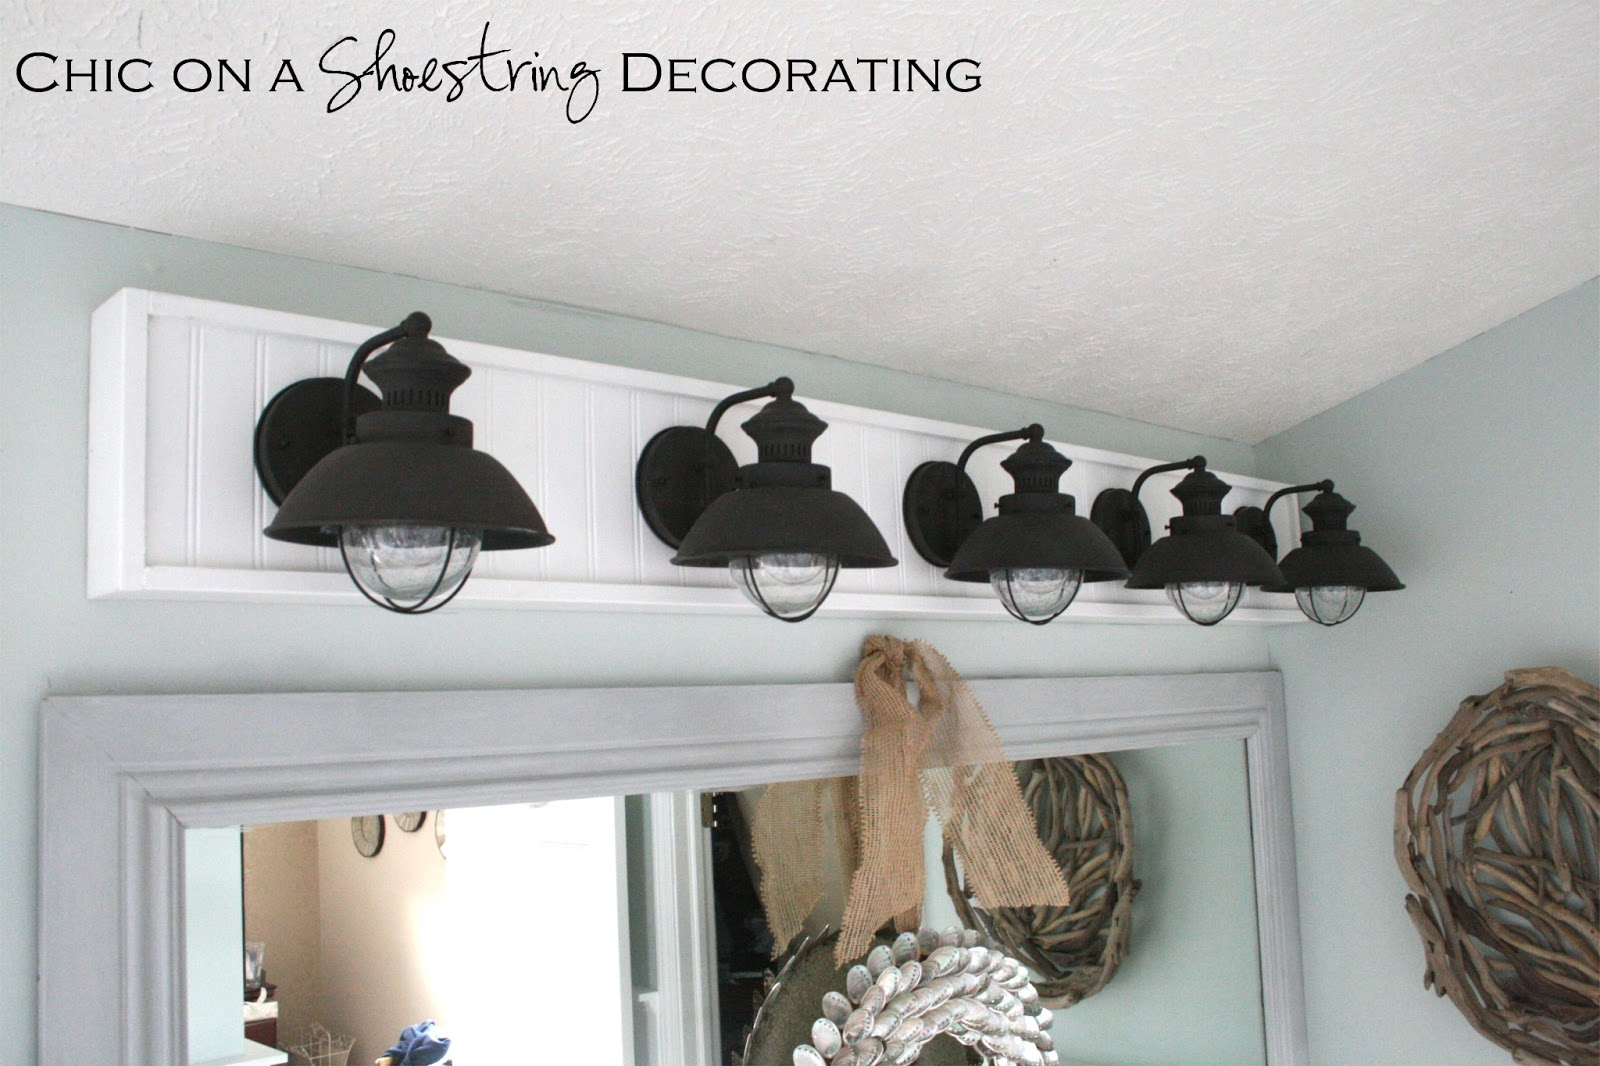 Cheap Bathroom Light Fixtures. Diy Bathroom Light Fixture By Chic On A Shoestring Decorating